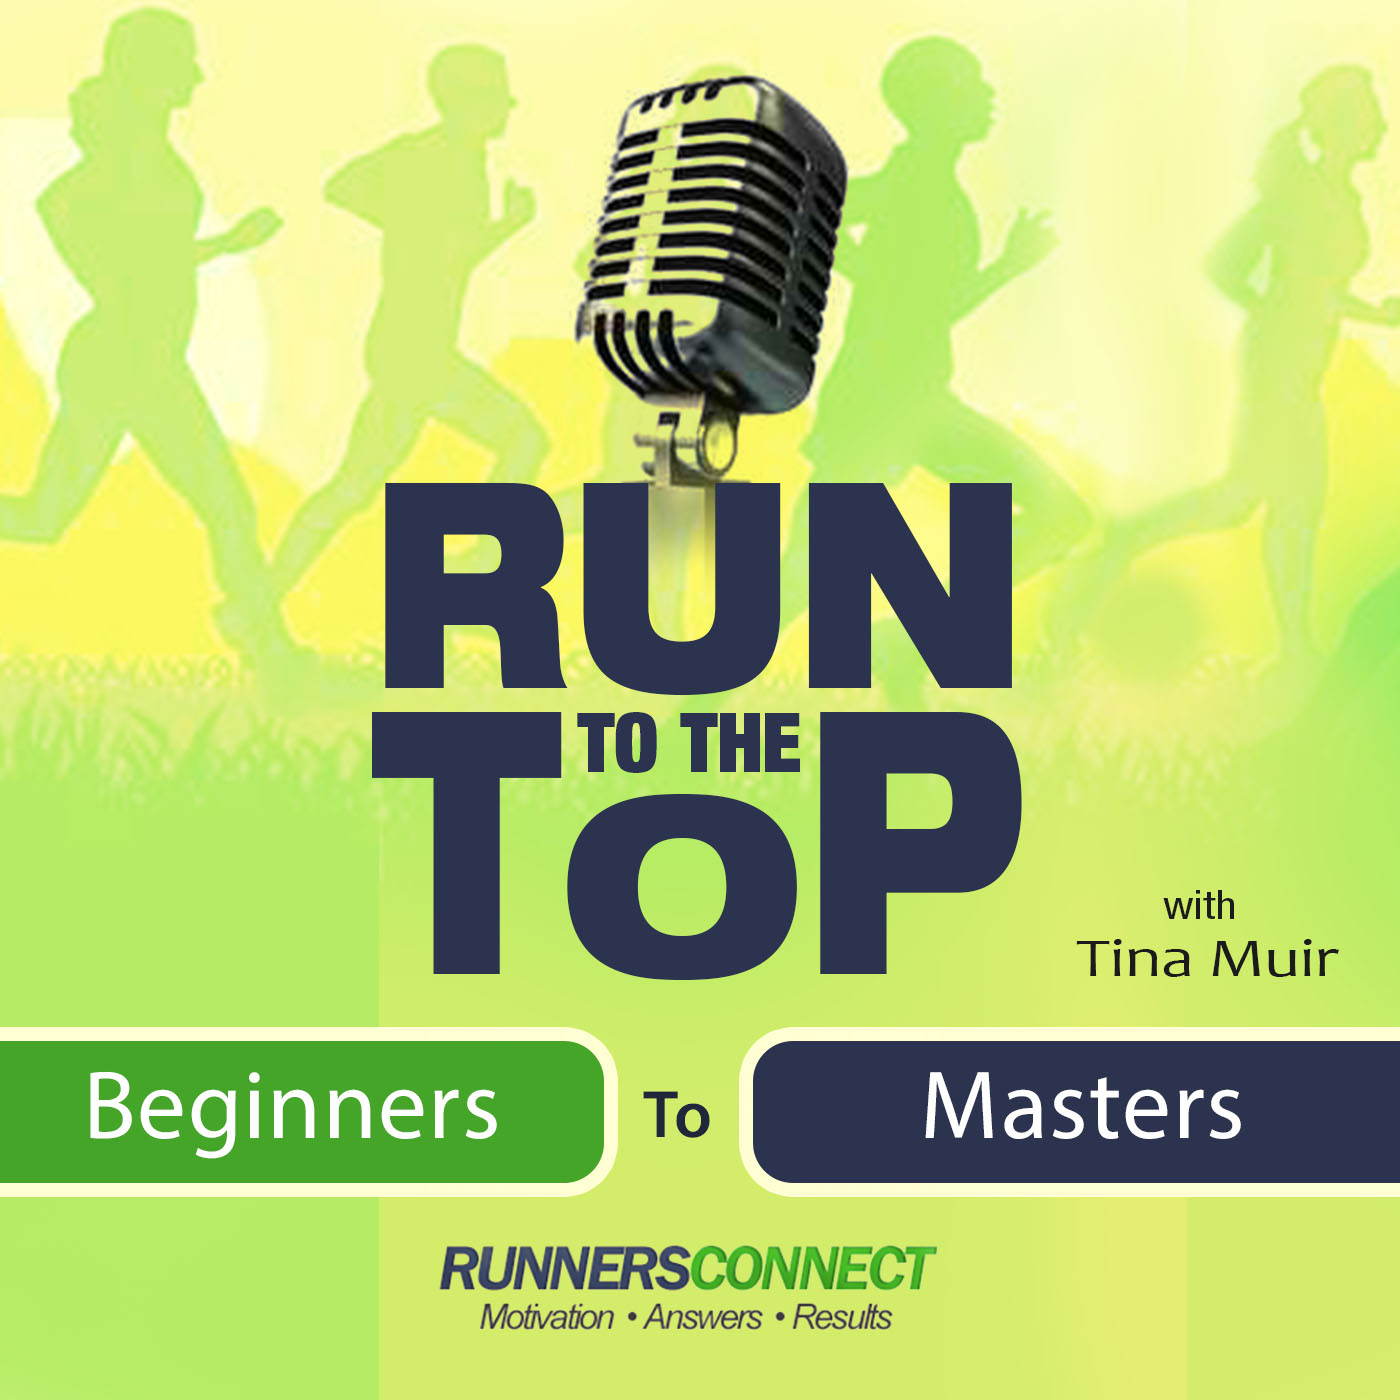 Tina Muir chats with Running Influencers, Researchers, Olympians, Experts & Everyday Runners